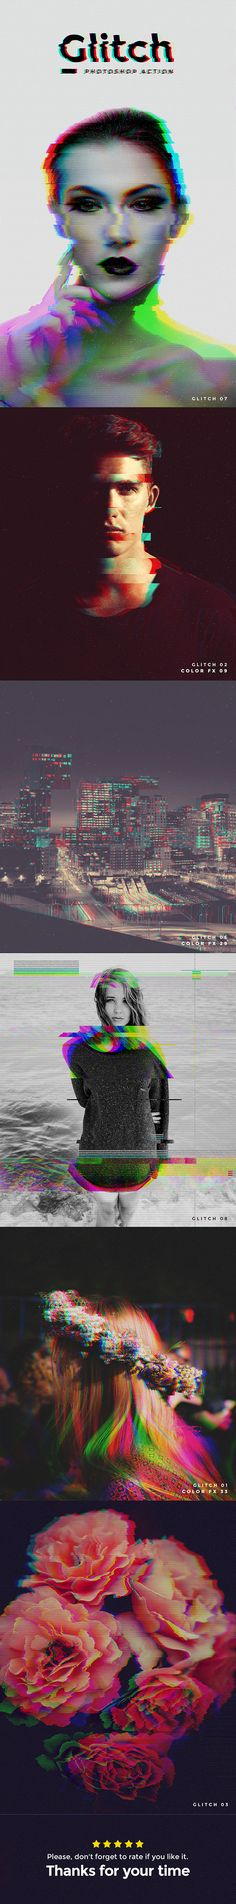 Glitch Photoshop Action: Photo Effects Photoshop created by Actions Photoshop, Photoshop Effects, Photoshop Tutorial, Photography Editing, Photography Tutorials, Portrait Photography, Photo Editing, Photomontage, Foto Filter